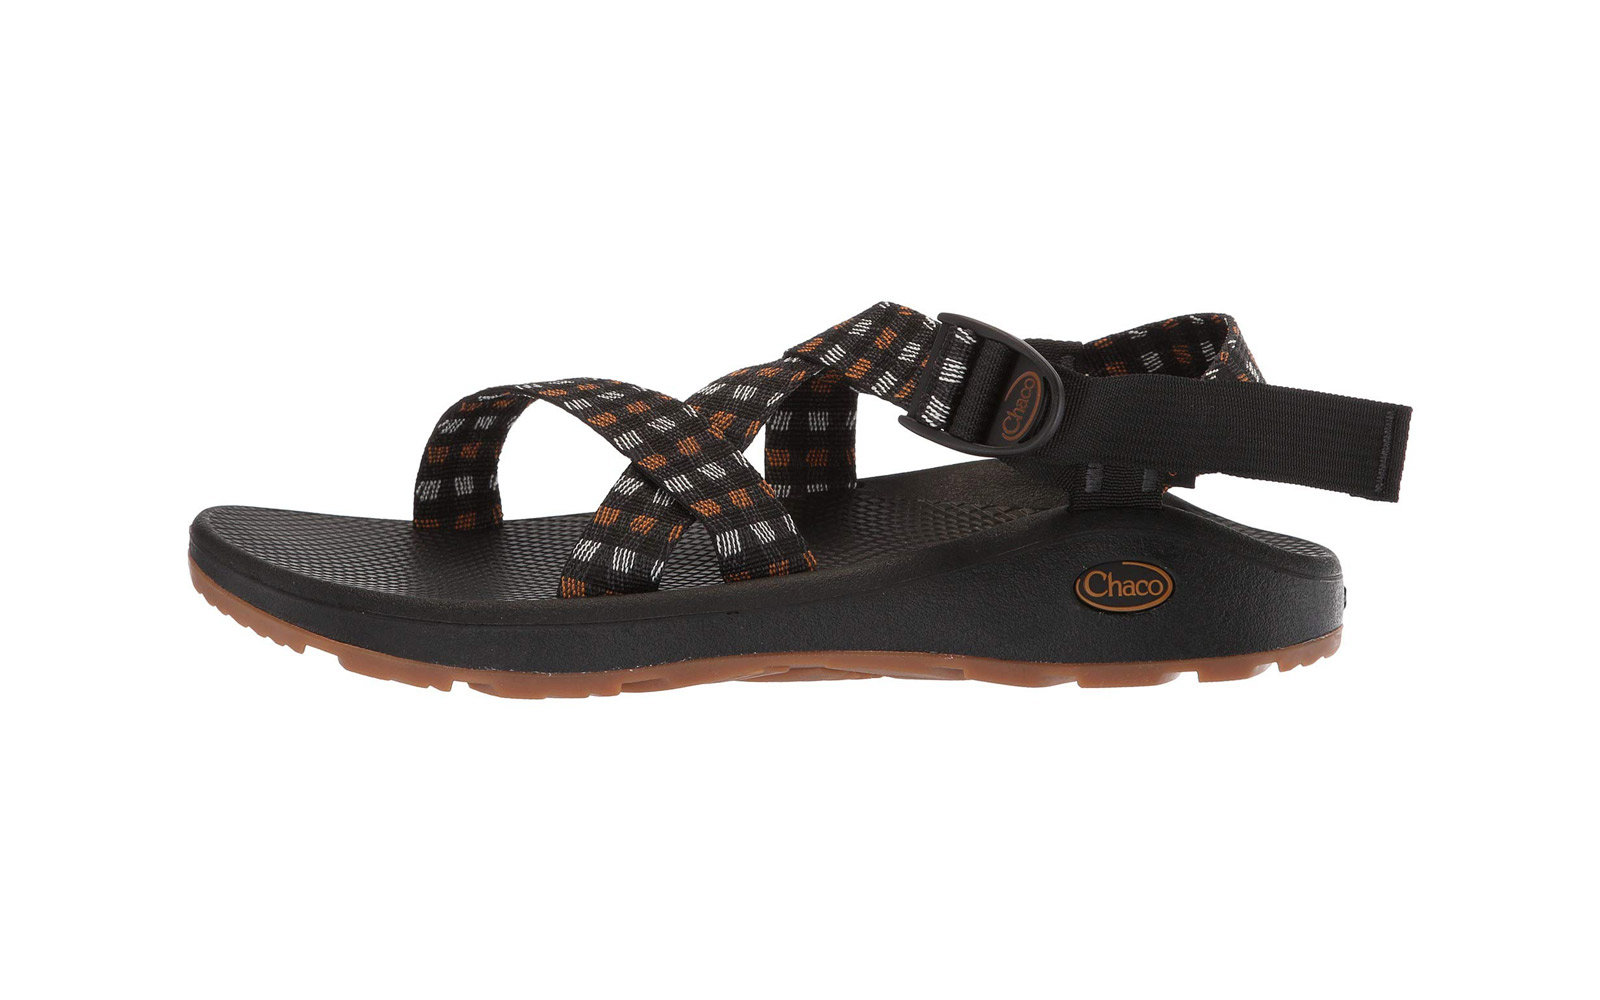 32f4901acb9 The Best Men s Sandals to Pack for Your Next Vacation